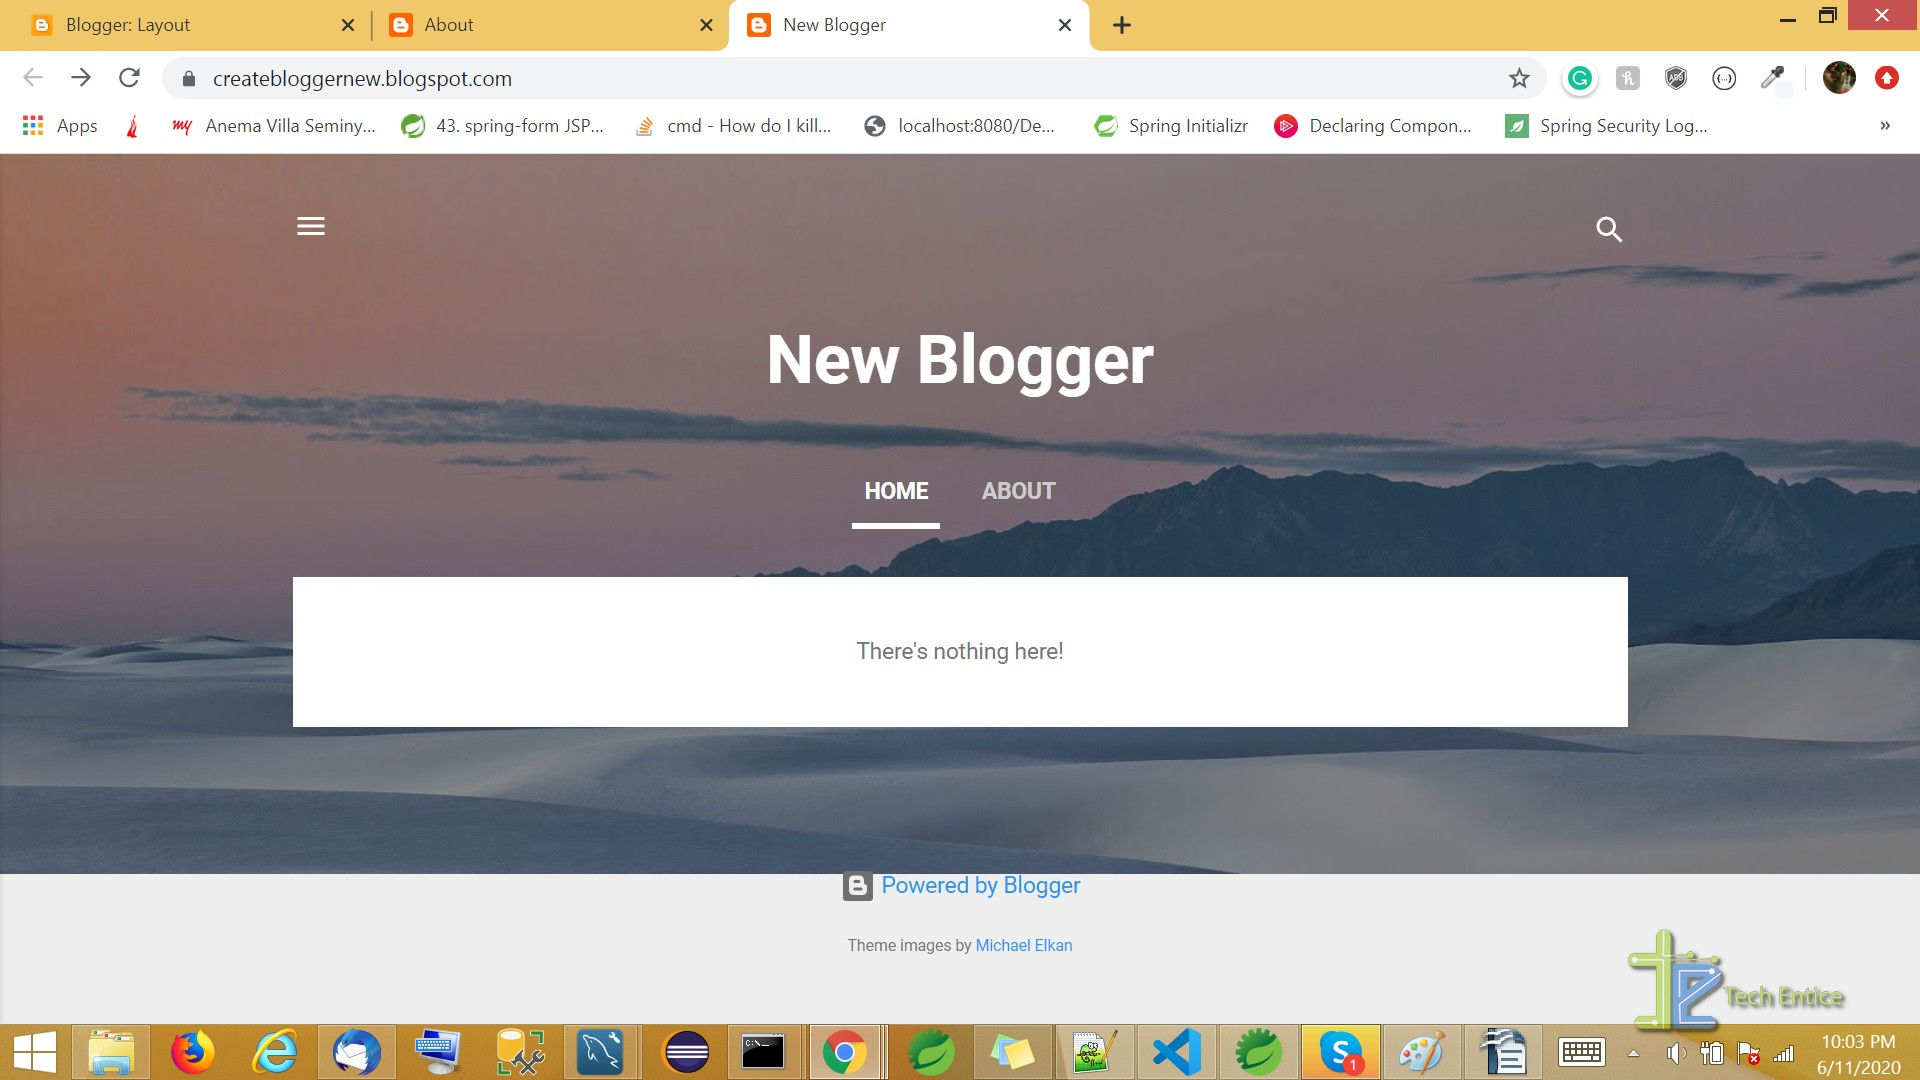 How To Add Pages To Your Blogger Account